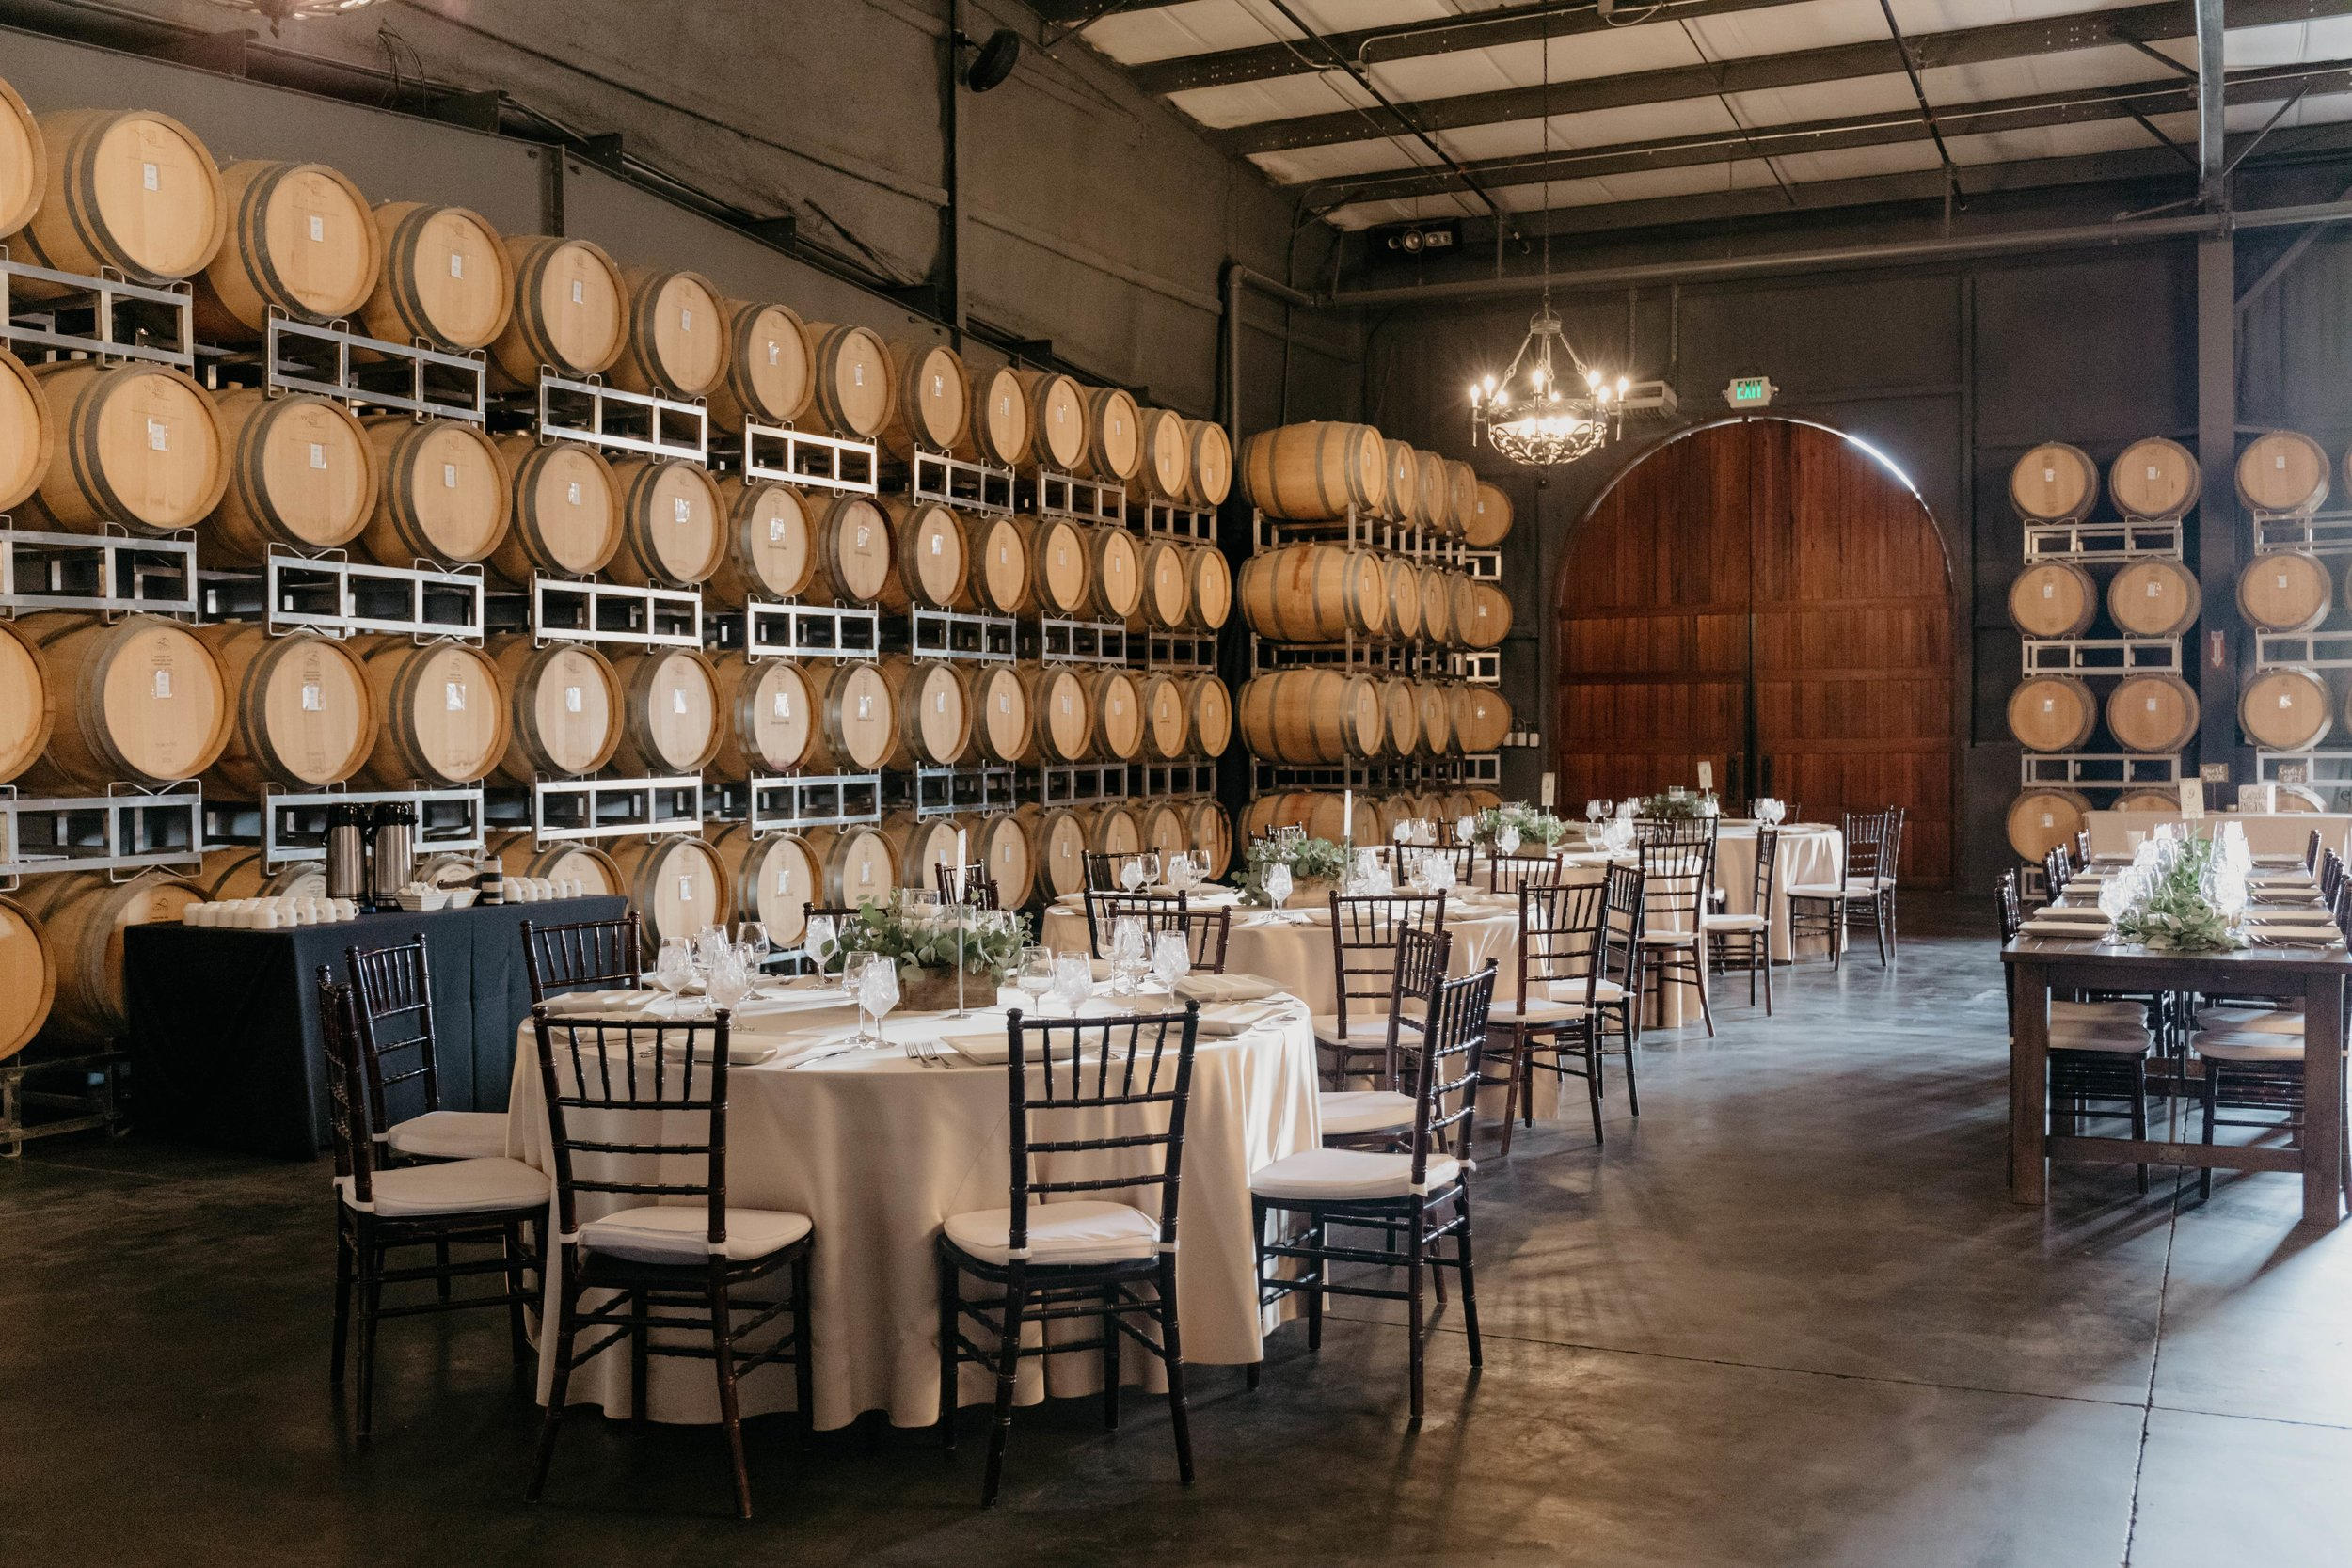 The barrel room at the Leal Vineyard prepared for a wedding reception.